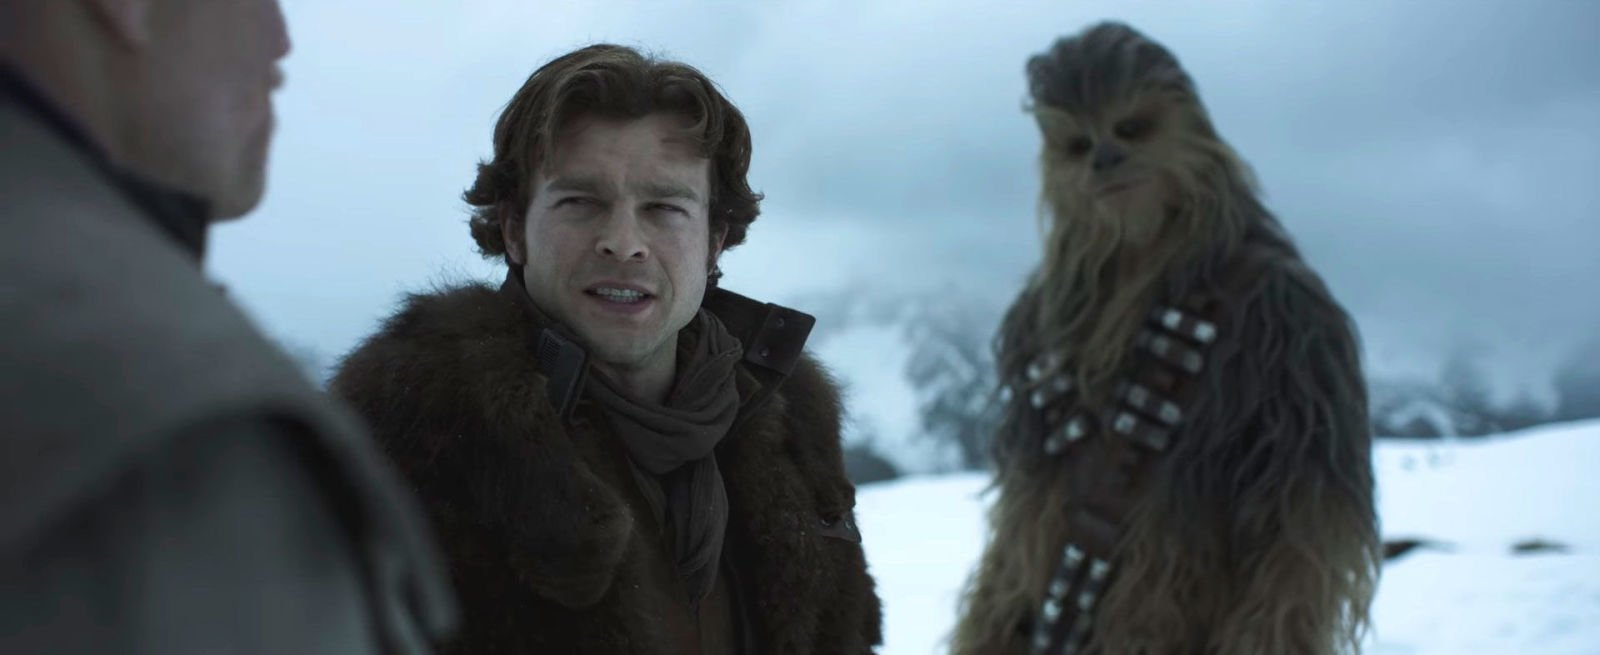 Solo: A Star Wars Story was inspired by a bizarre mix of movies